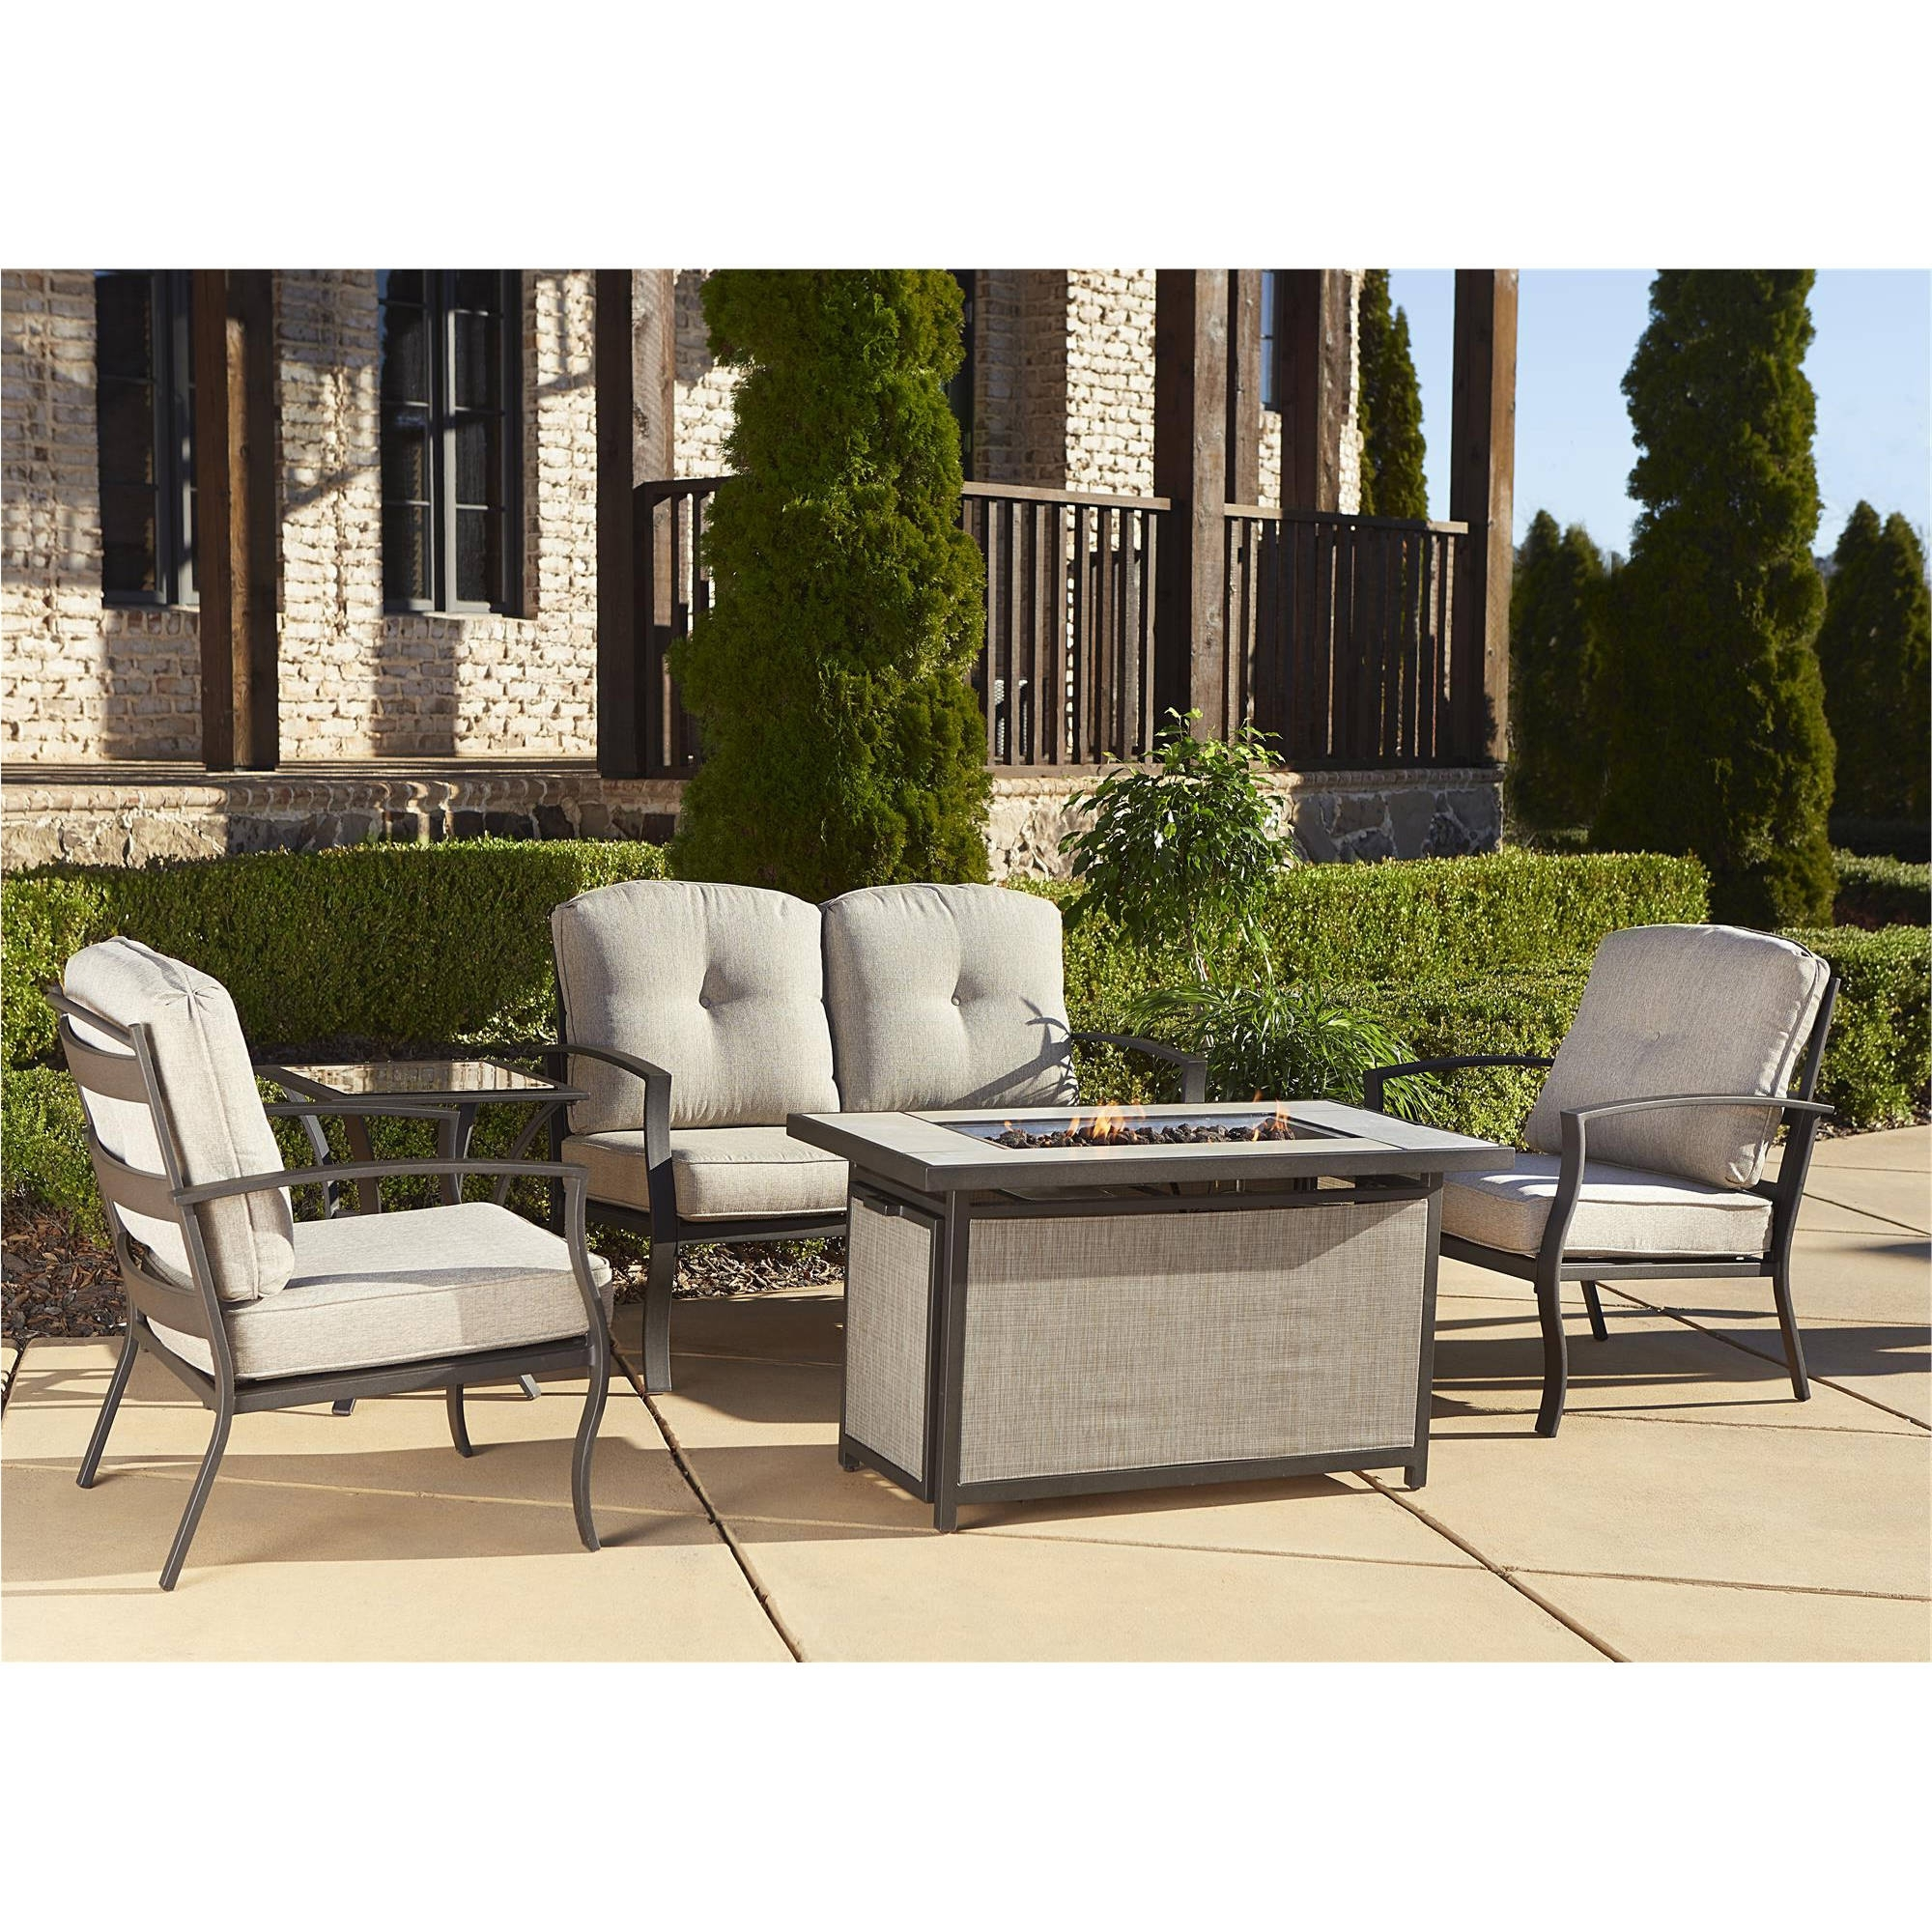 Best Of Patio Furniture Sets With Gas Fire Pit Conversation Sets Throughout Most Recently Released Patio Conversation Sets With Propane Fire Pit (View 2 of 20)